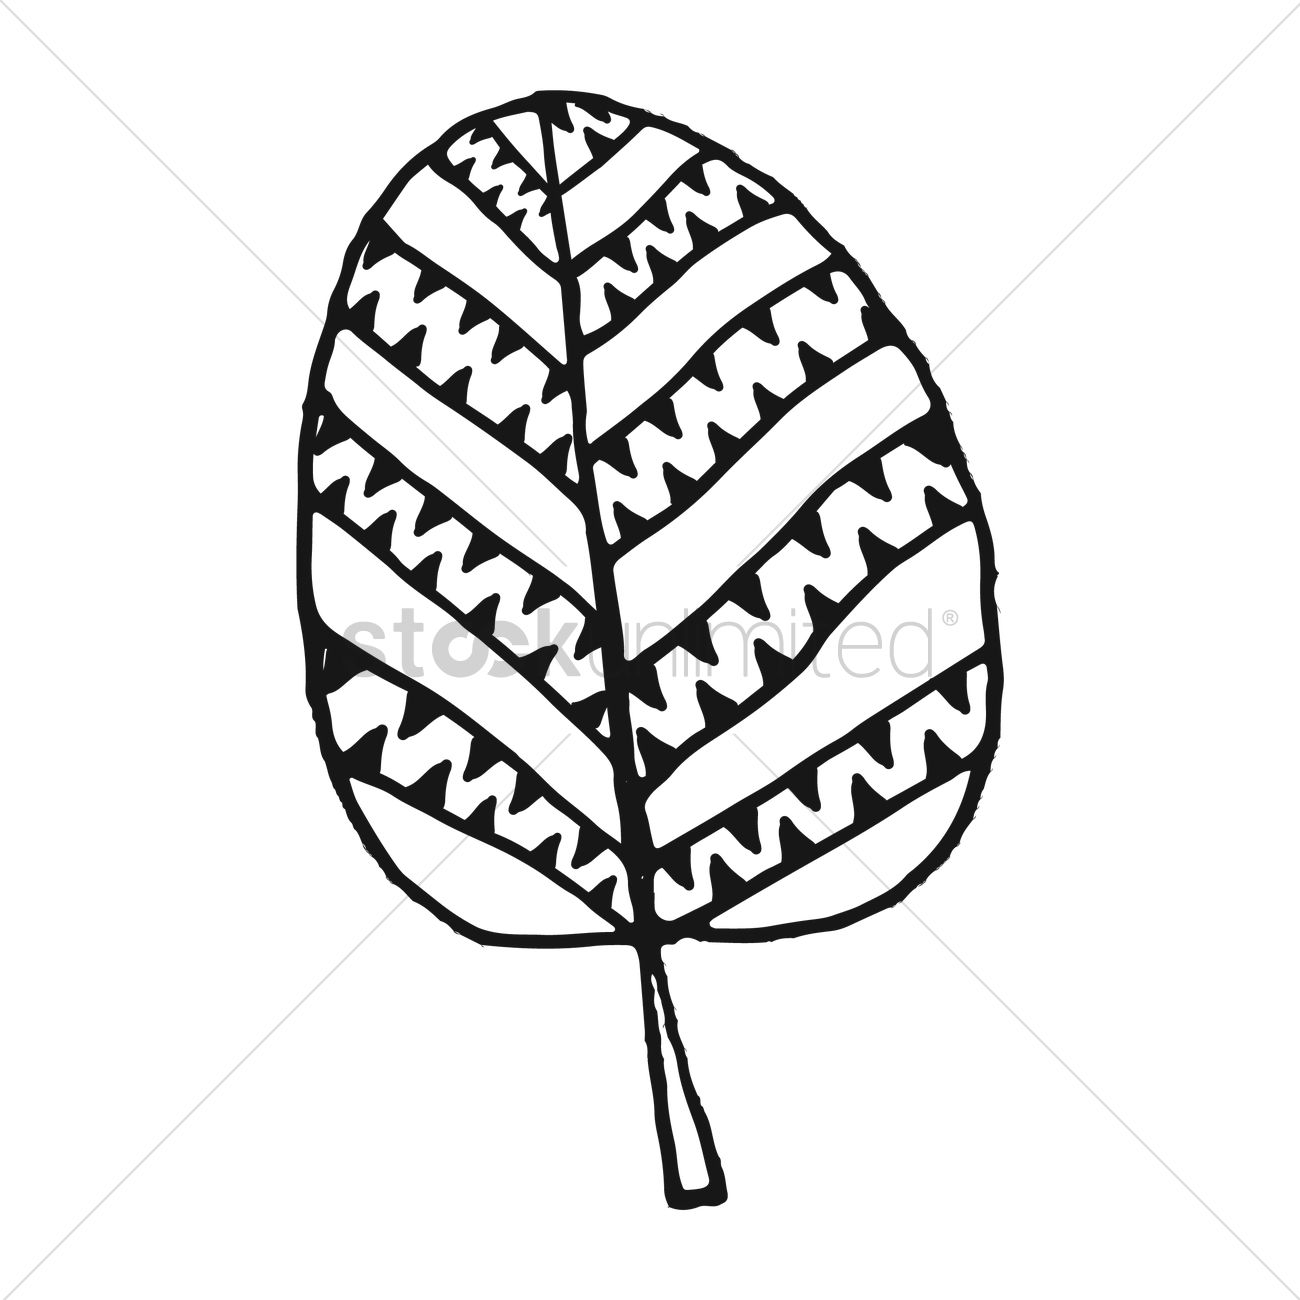 1300x1300 Simple Leaf Design Vector Image